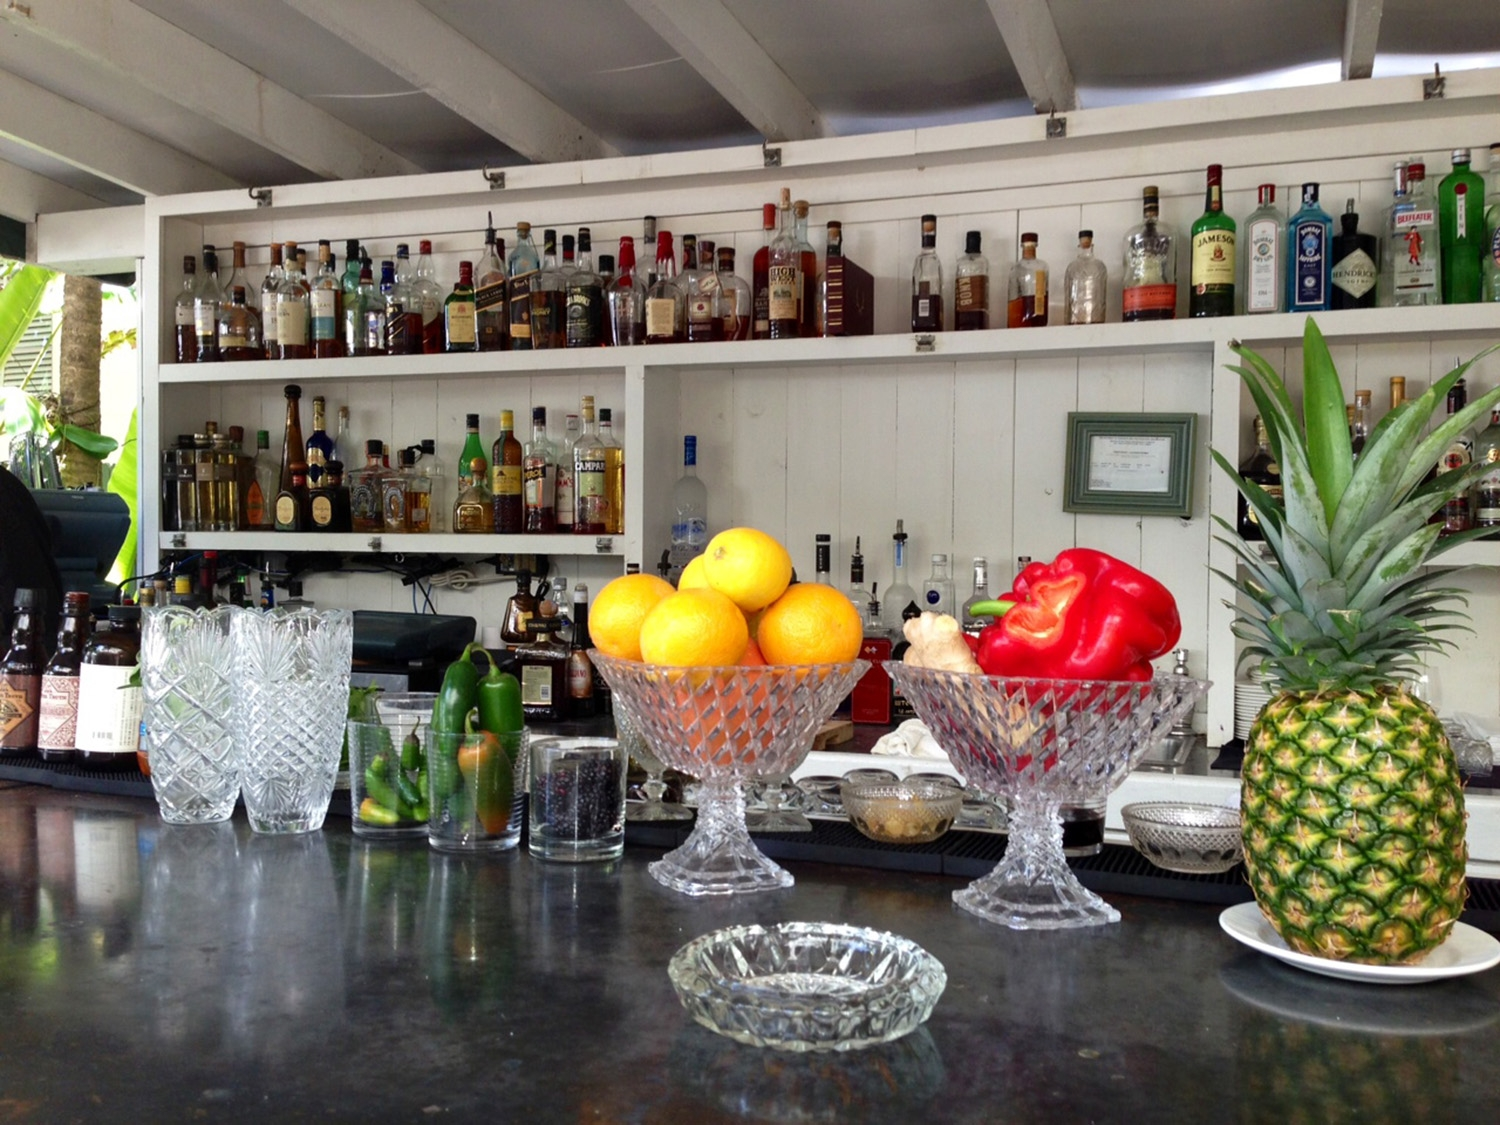 A white, wooden poolside bar has bottles of alcohol lined across the shelves on the back wall, and bowls of fruit on the bar